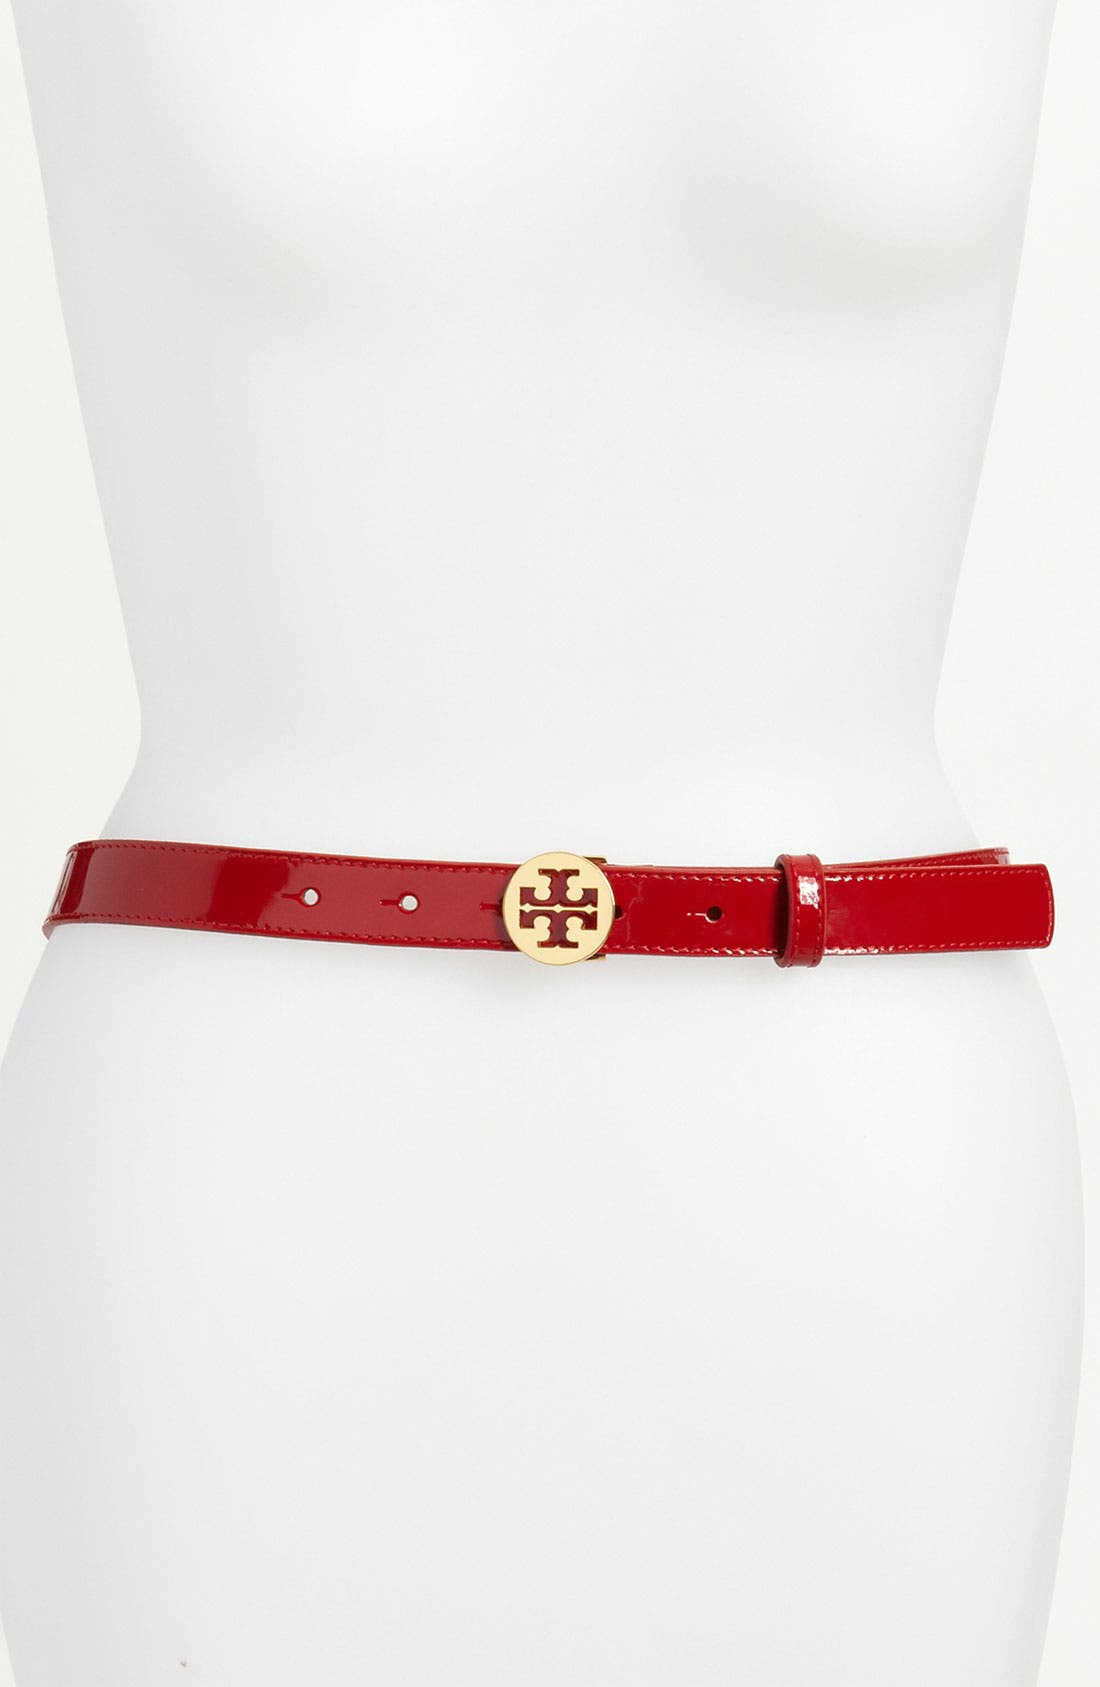 Alternate Image 1 Selected - Tory Burch 'Logo' Patent Leather Belt